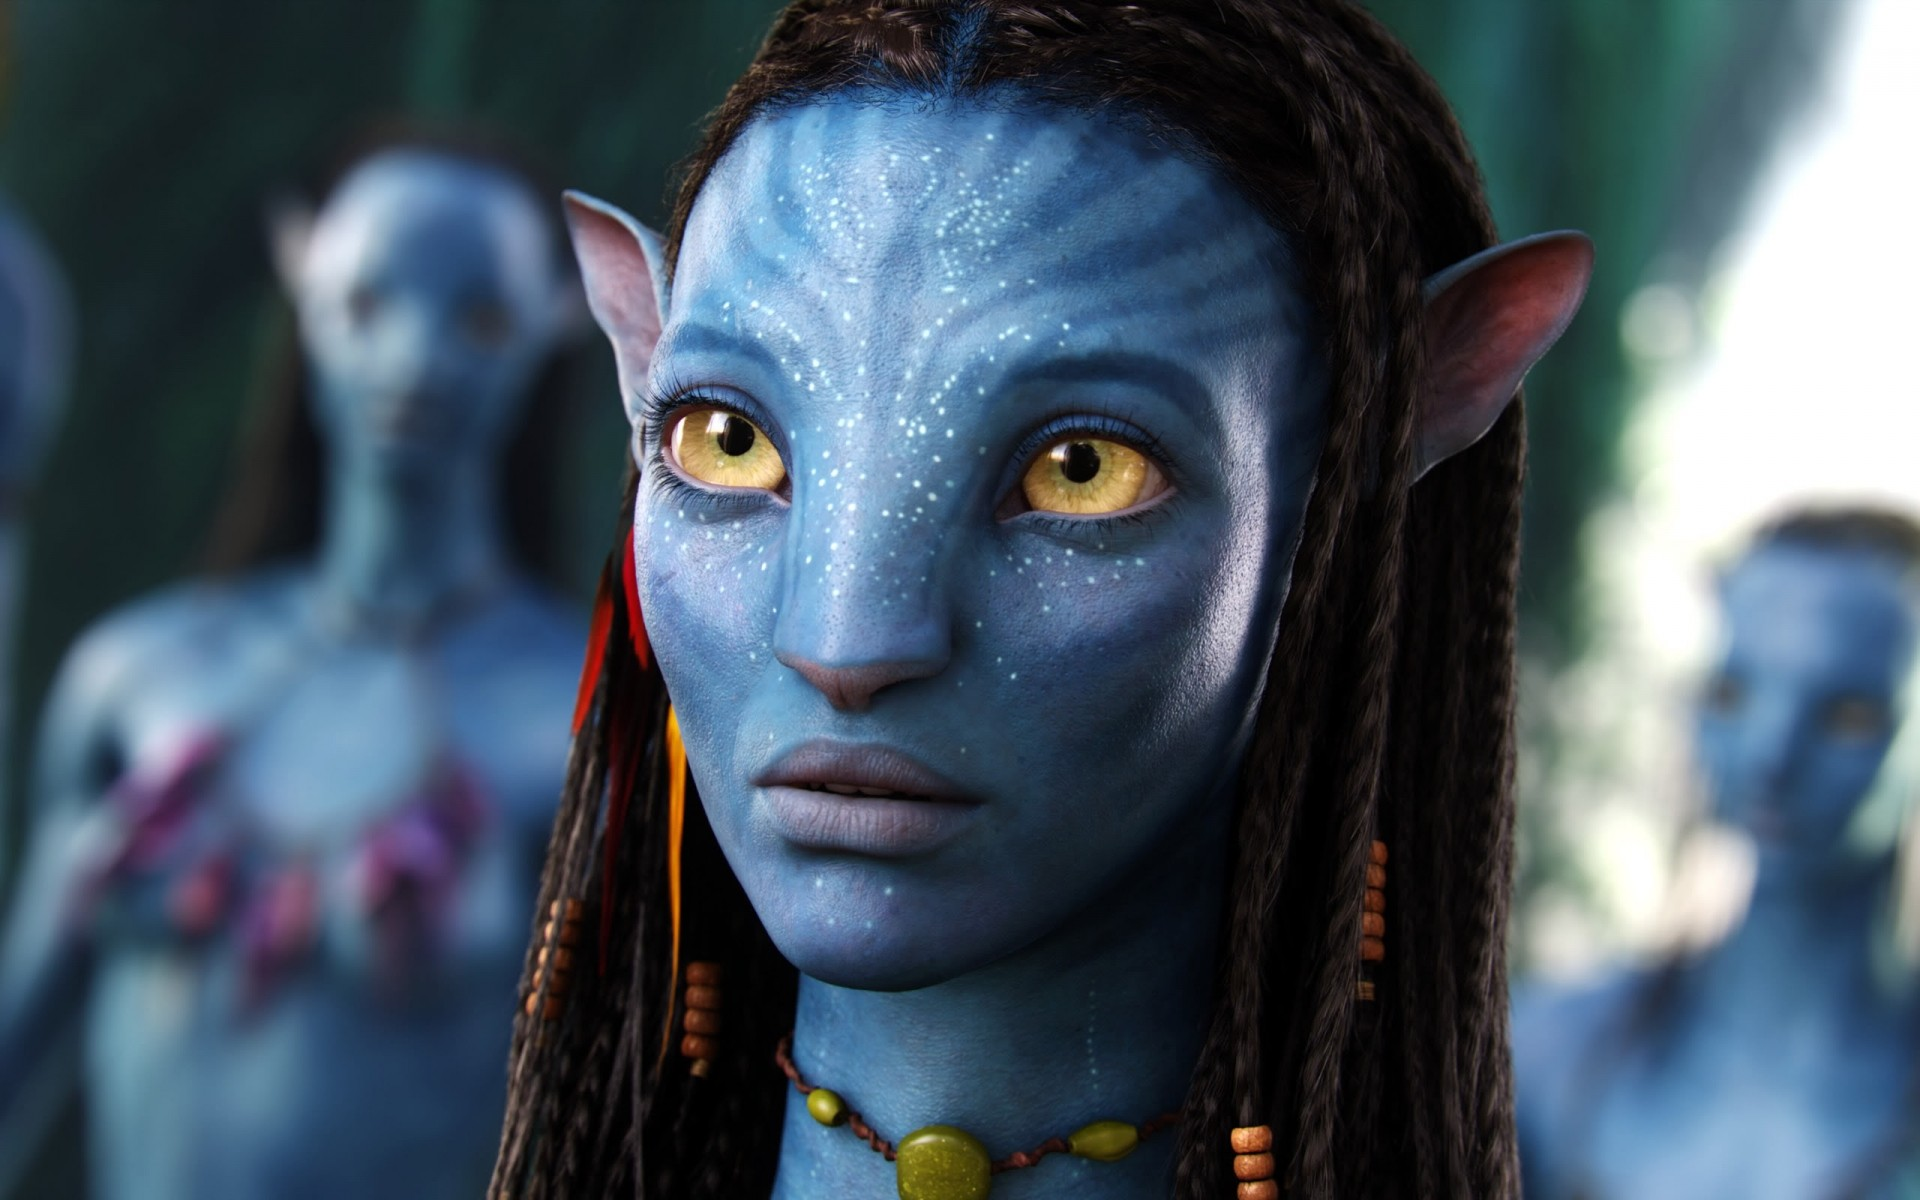 avatar essay images Published: mon, 5 dec 2016 avatar is a 2009 science fiction epic movie production written and directed by james cameron this film is set in the year 2154, when humans are mining a precious mineral called 'unobtanium' on pandora, a lush moon of a gas giant in the alpha centauri star system.